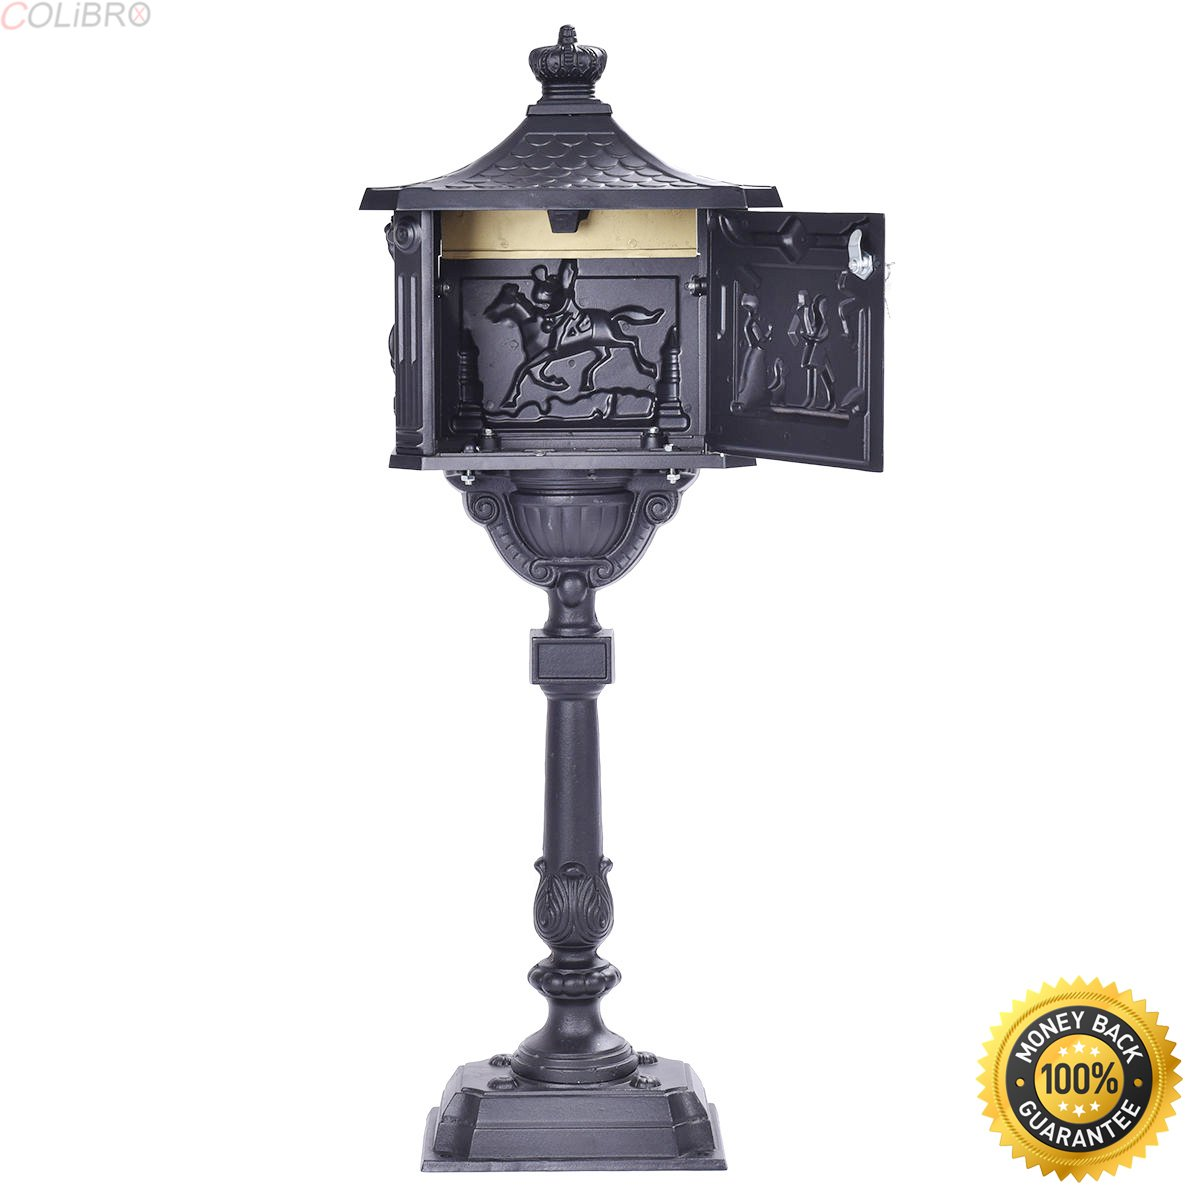 COLIBROX--Mail Box Heavy Duty Mailbox Postal Box Security Cast Aluminum Vertical Pedestal,lockable post mount mailbox,best locking mailbox ,mail boss package master commercial locking mailbox